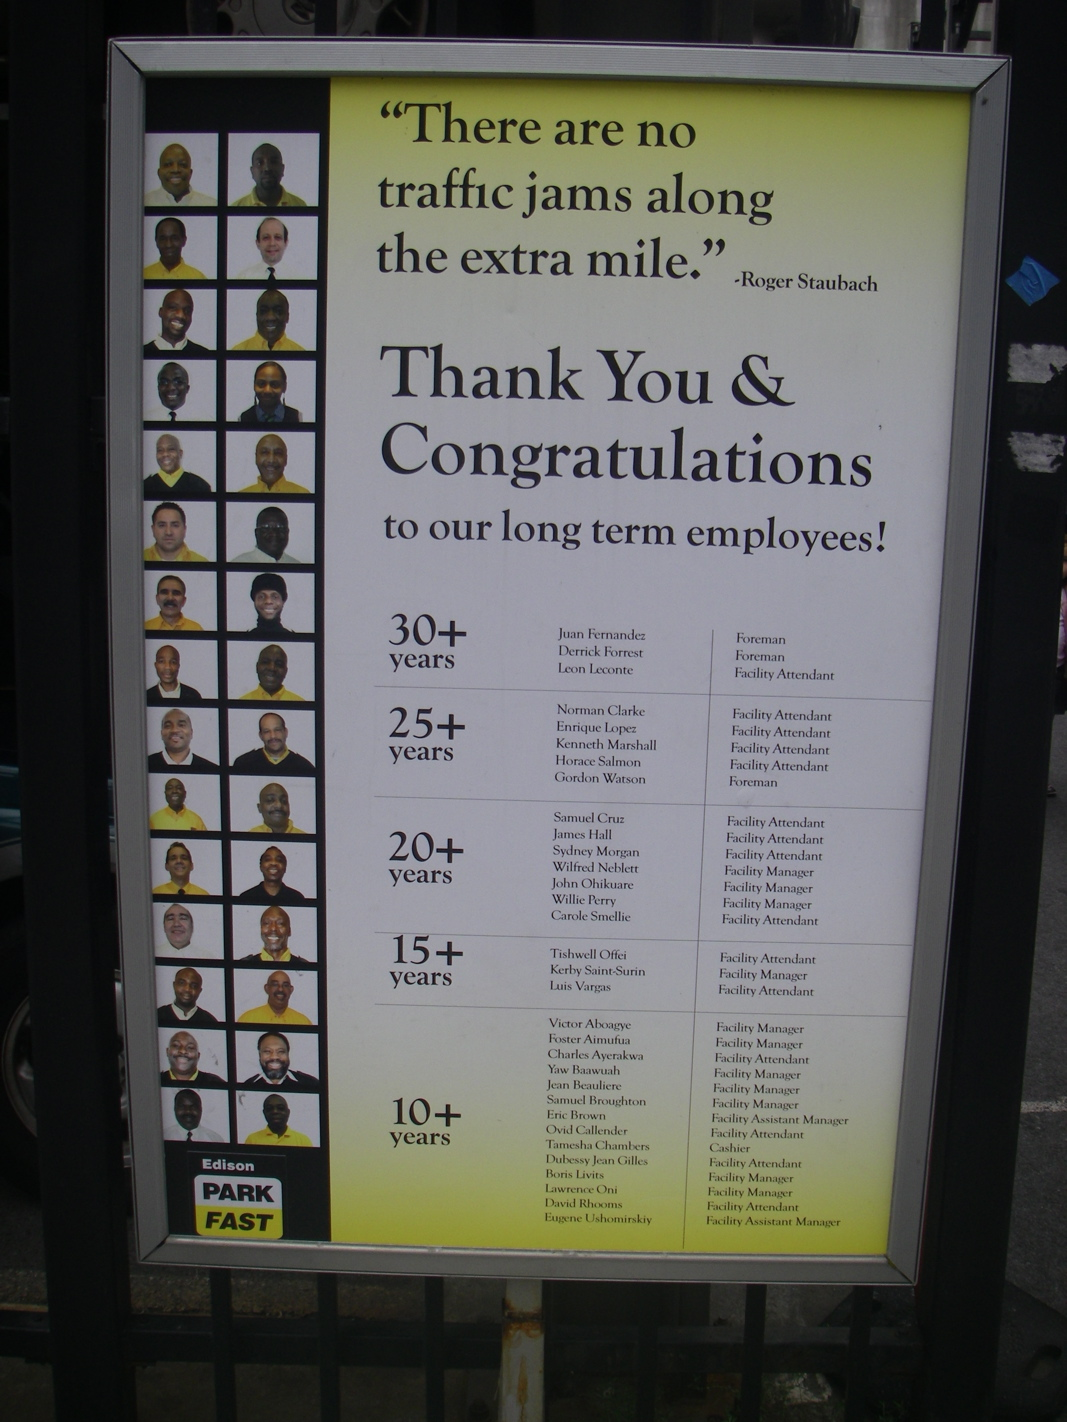 This is how to treat your employees